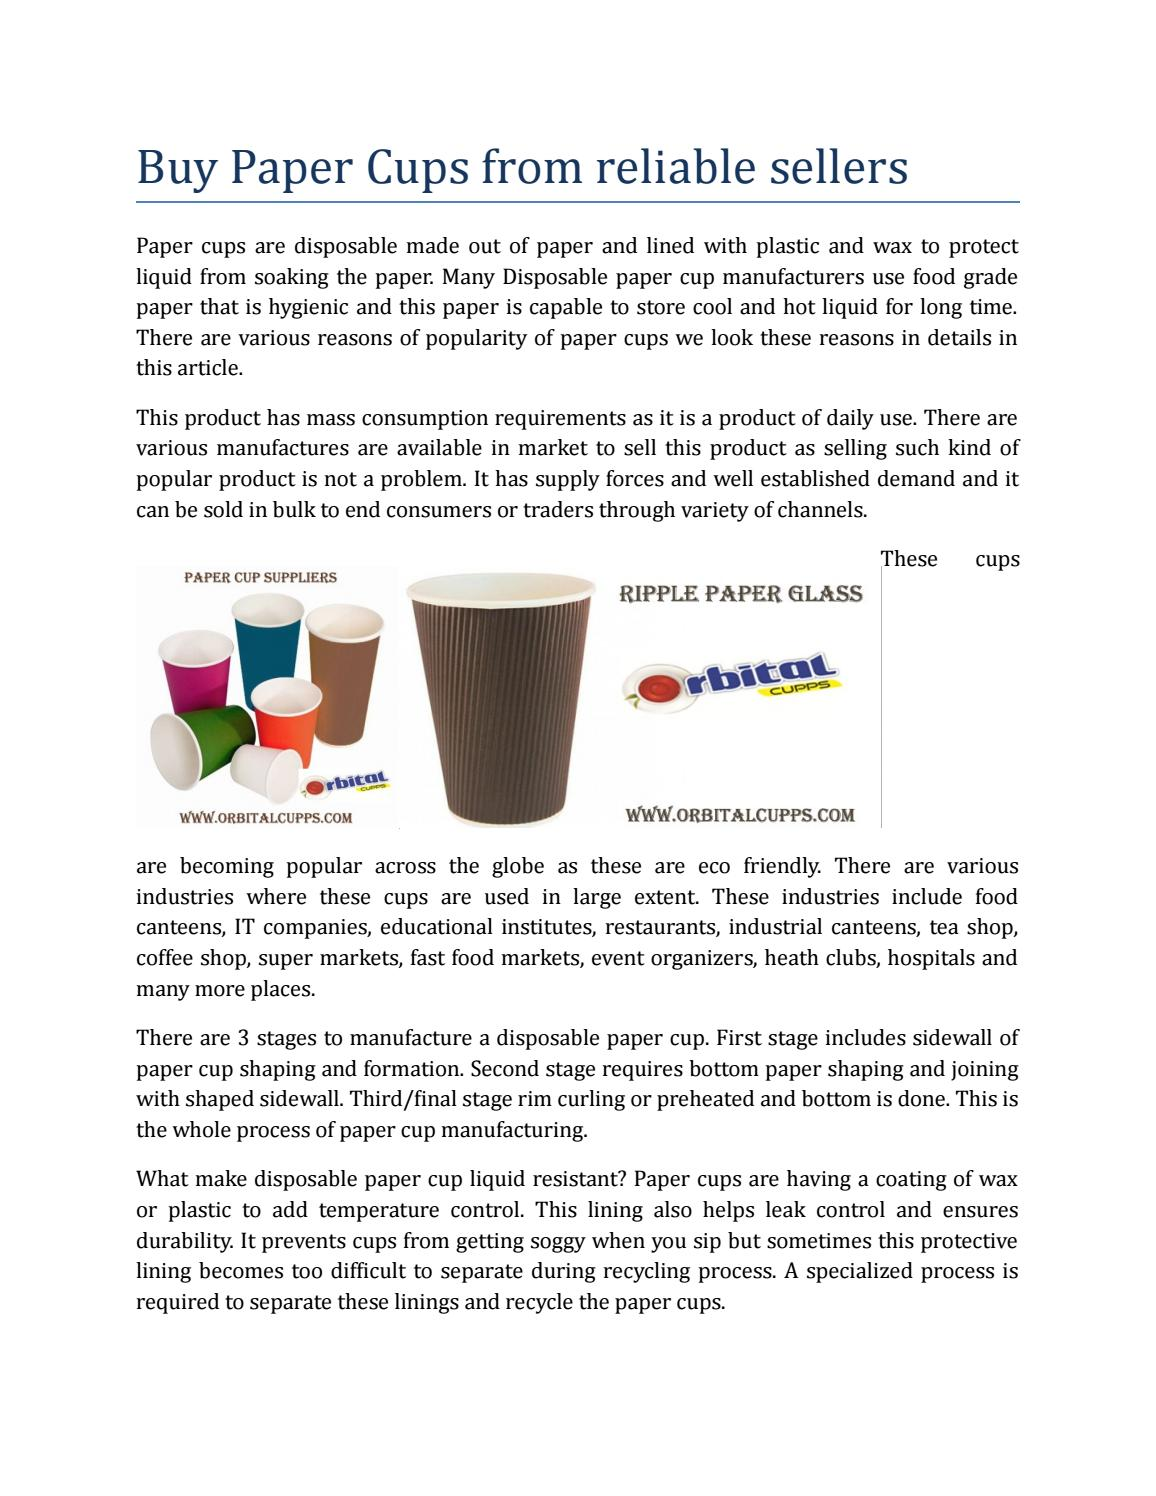 Disposable paper cup manufacturers by orbital cupps - issuu